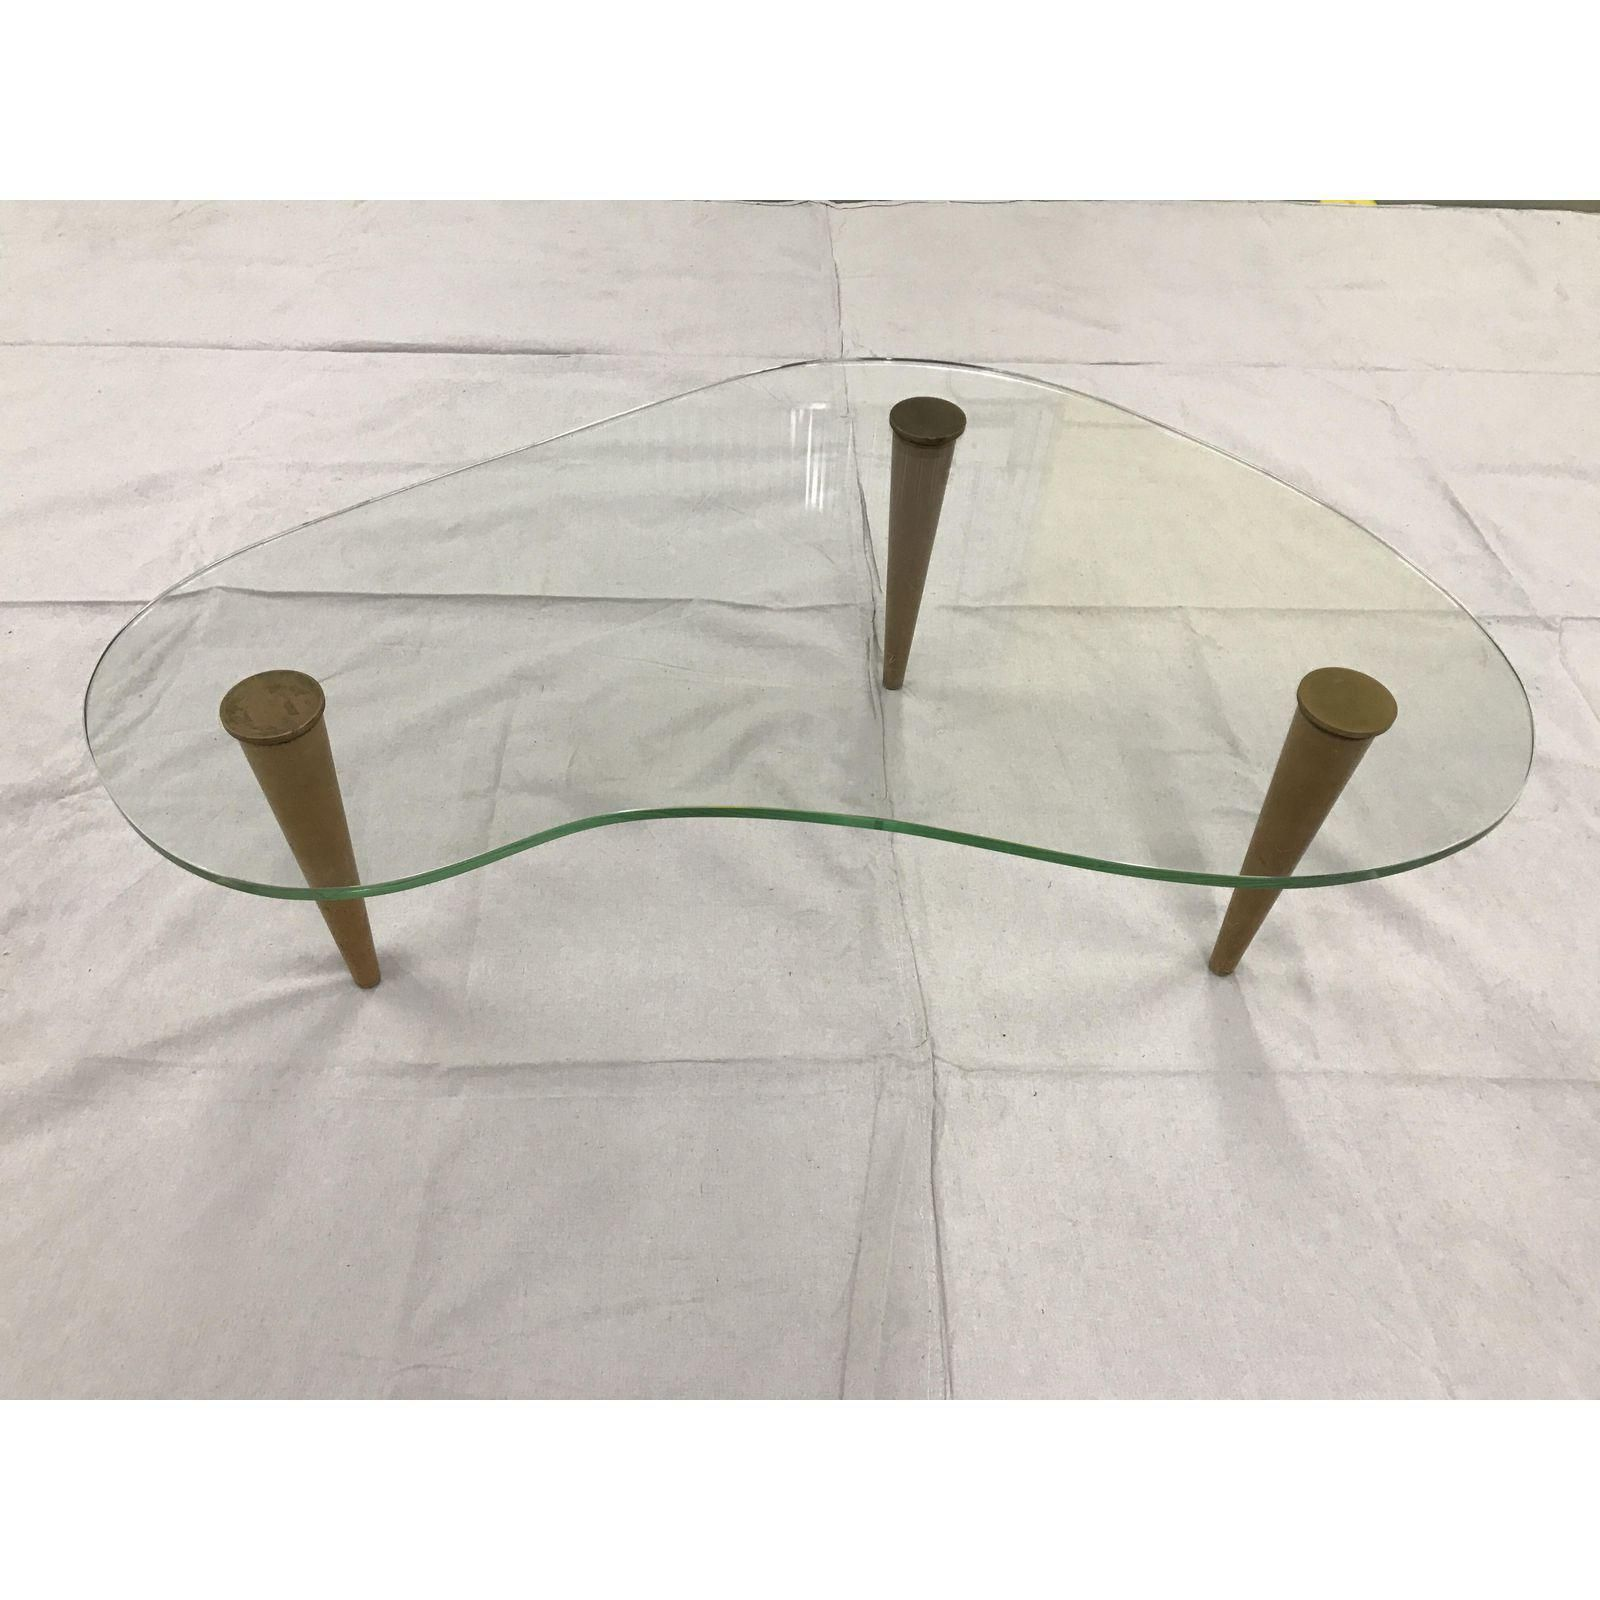 Image Of Gilbert Rohde Kidney Shaped Glass Coffee Table Coffee Table Glass Coffee Table Table [ 1600 x 1600 Pixel ]